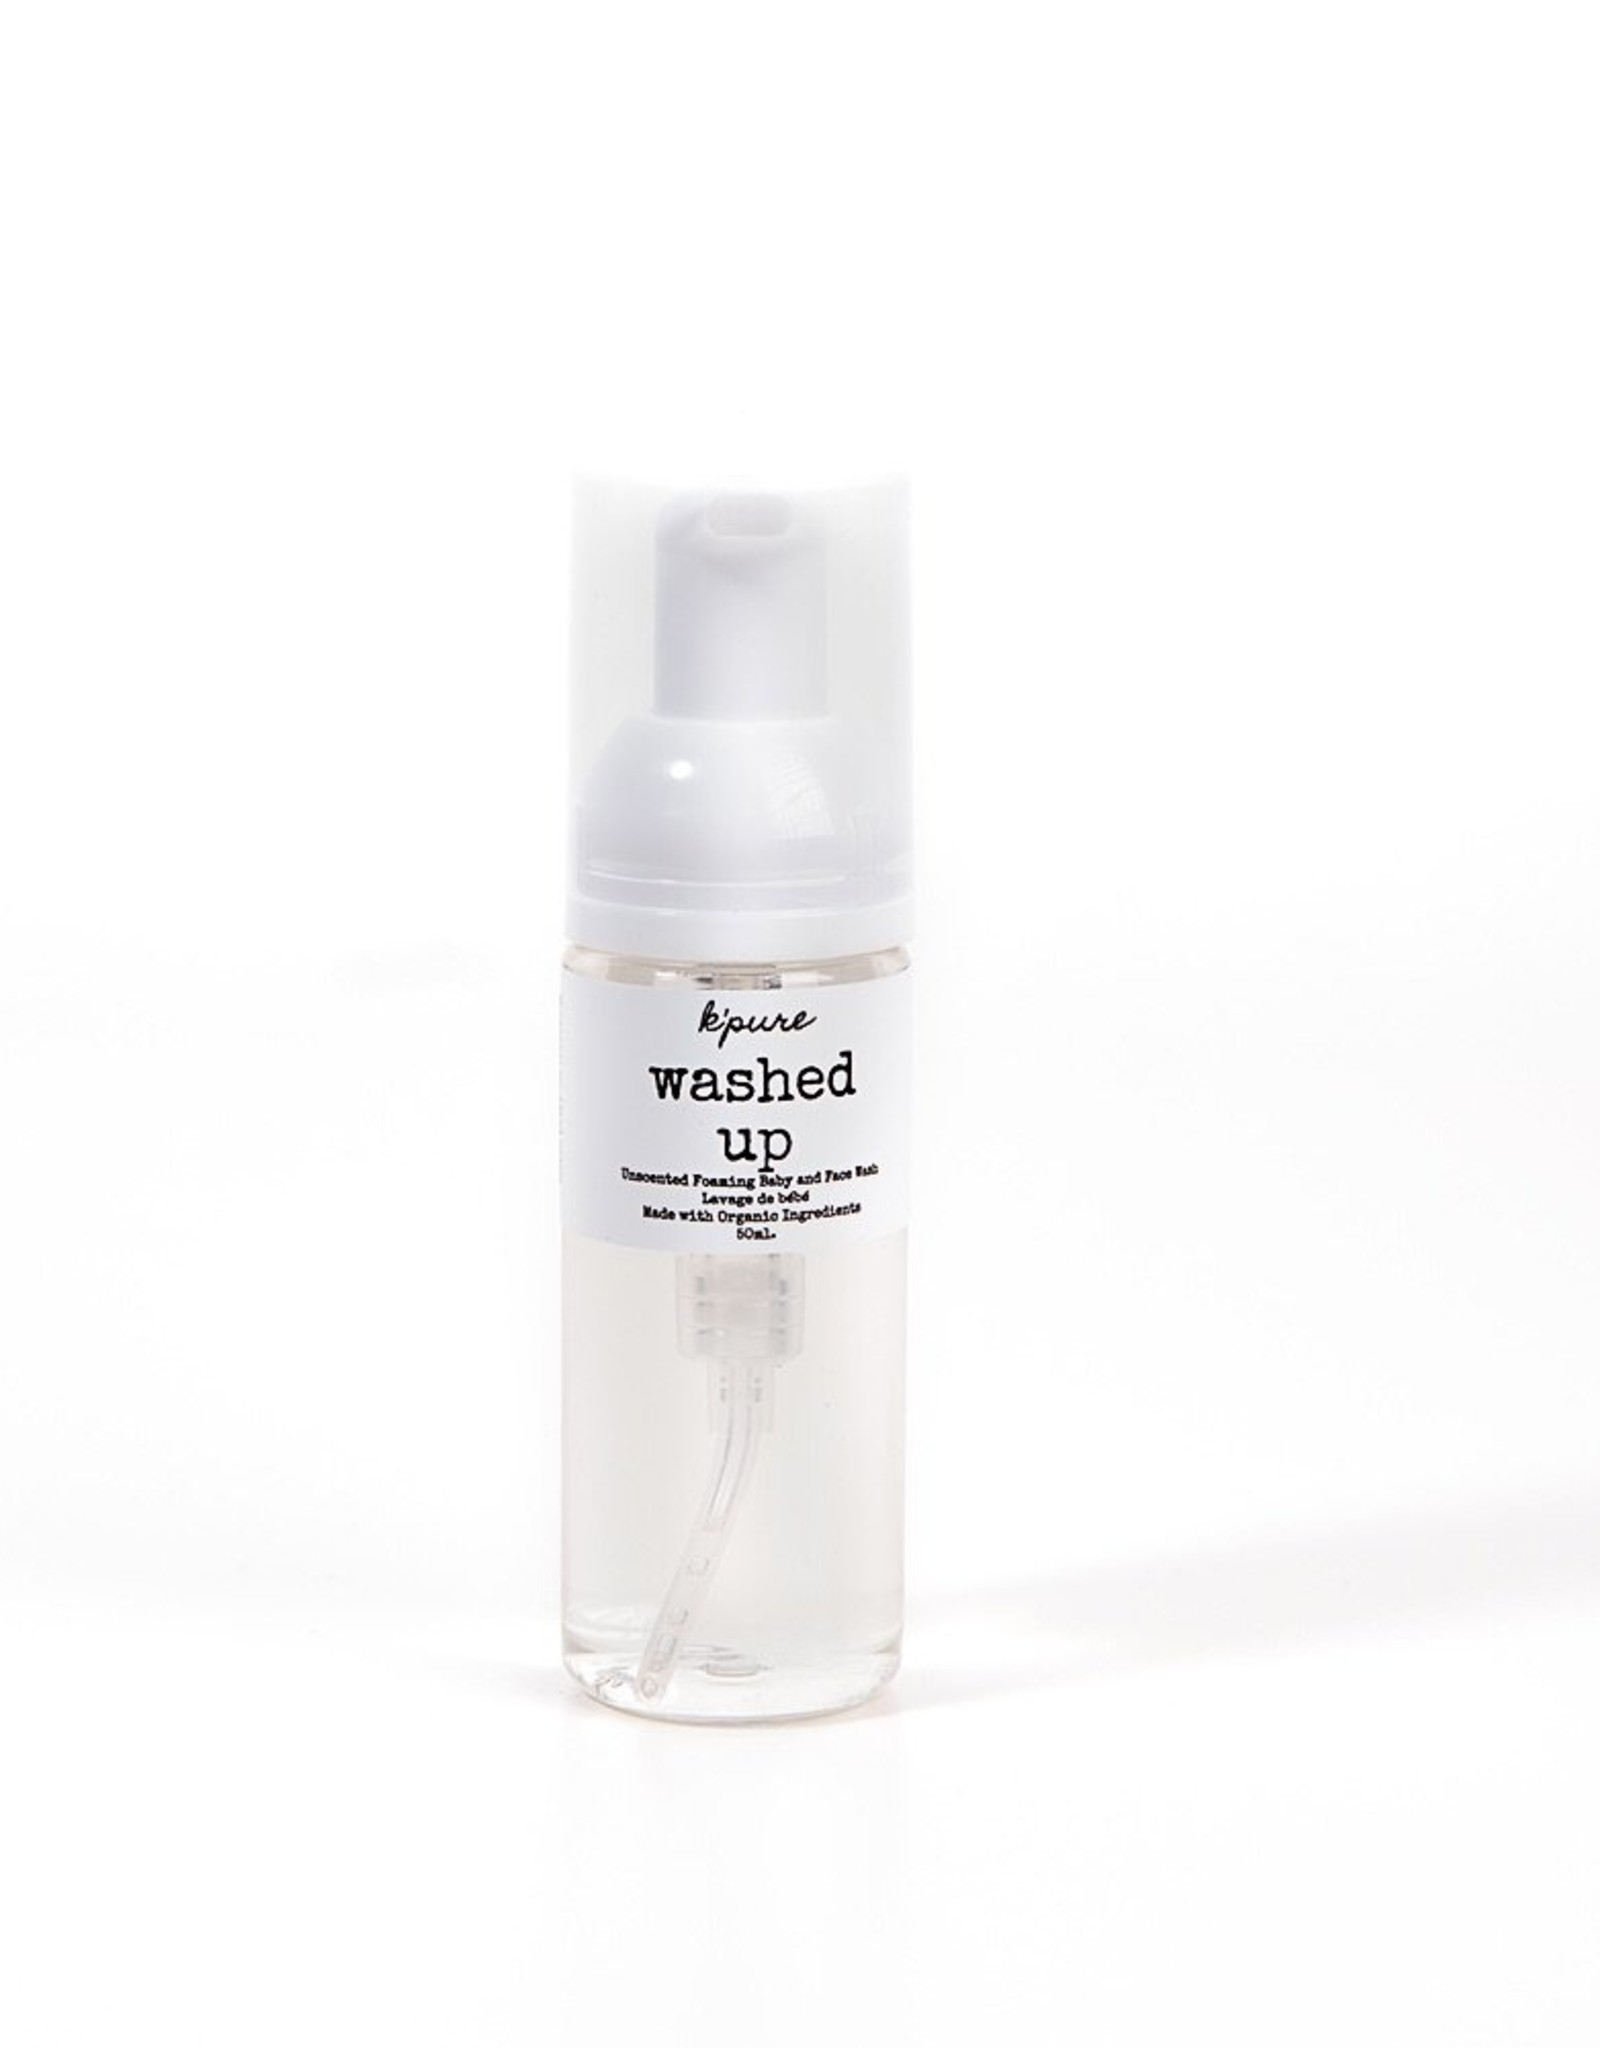 K'Pure Washed Up 50ml Unsented